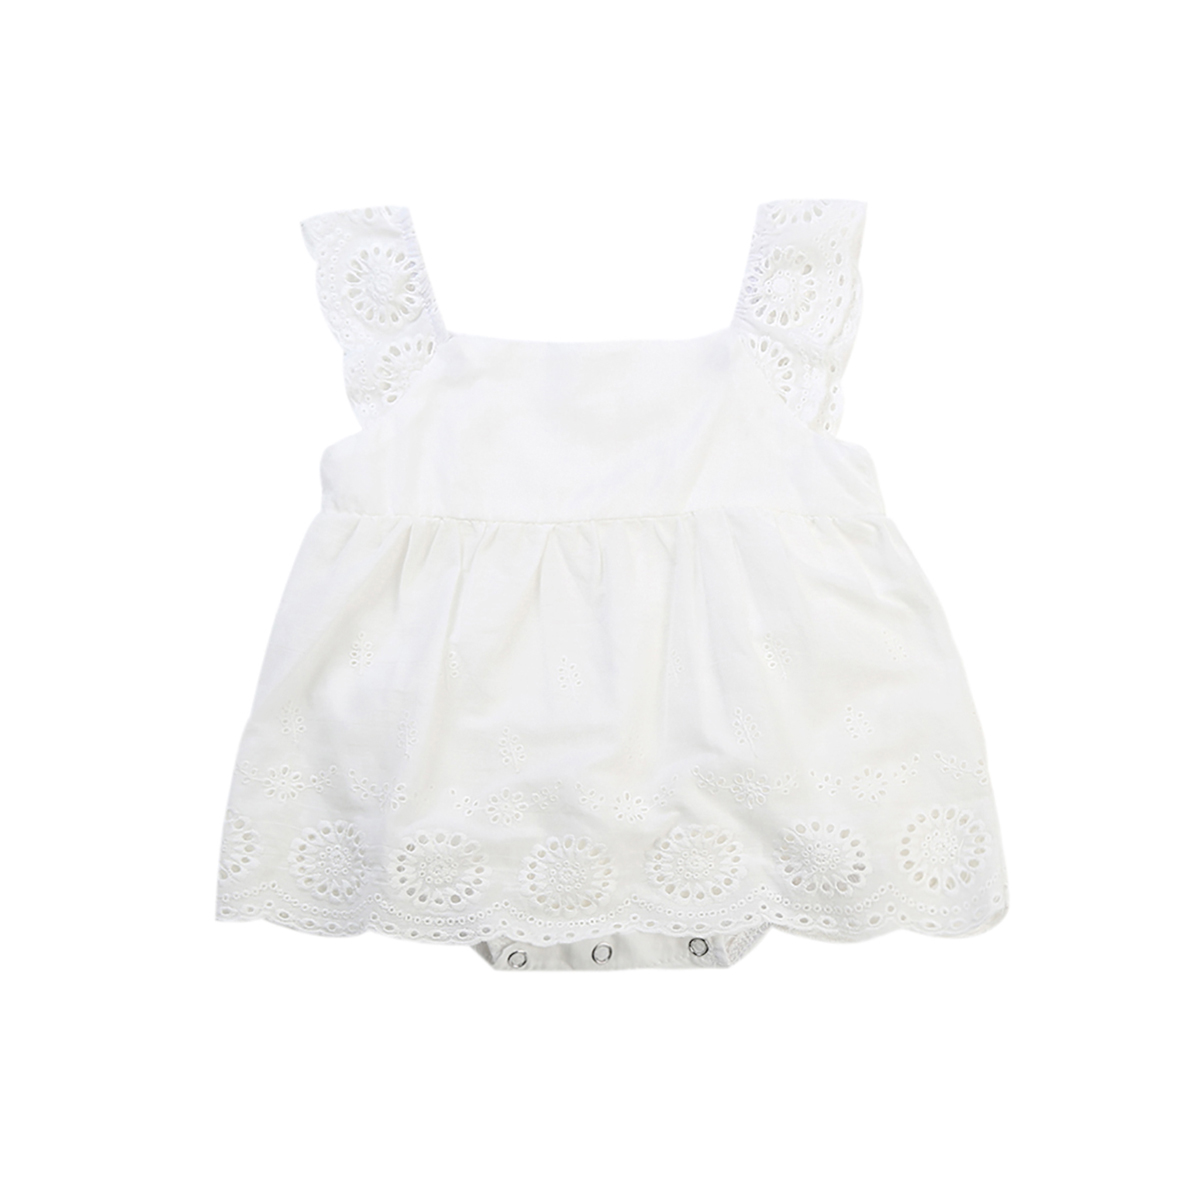 Newborn Infant Baby Clothes Baby Girl Rompers Sleeveless Floral Jumpsuit Playsuit Outfits Sunsuit Summer Baby Onesie Clothing newborn infant baby girl boys cute rabbit bunny rompers jumpsuit long sleeve clothing outfits girls sunsuit clothes